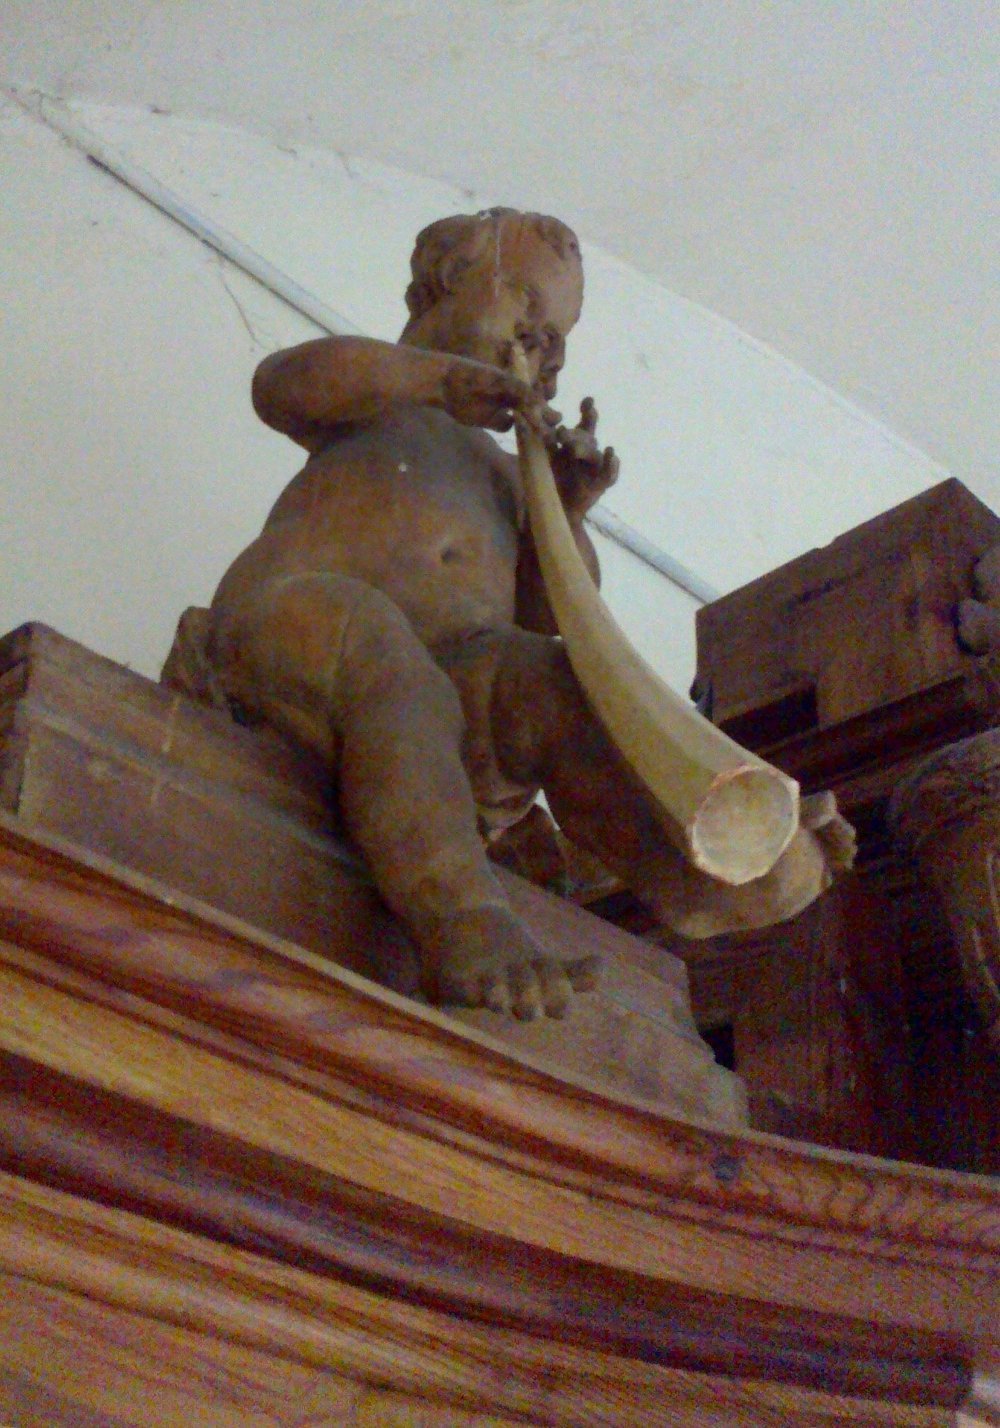 Cornetto playing putto on an organ case from 1774.